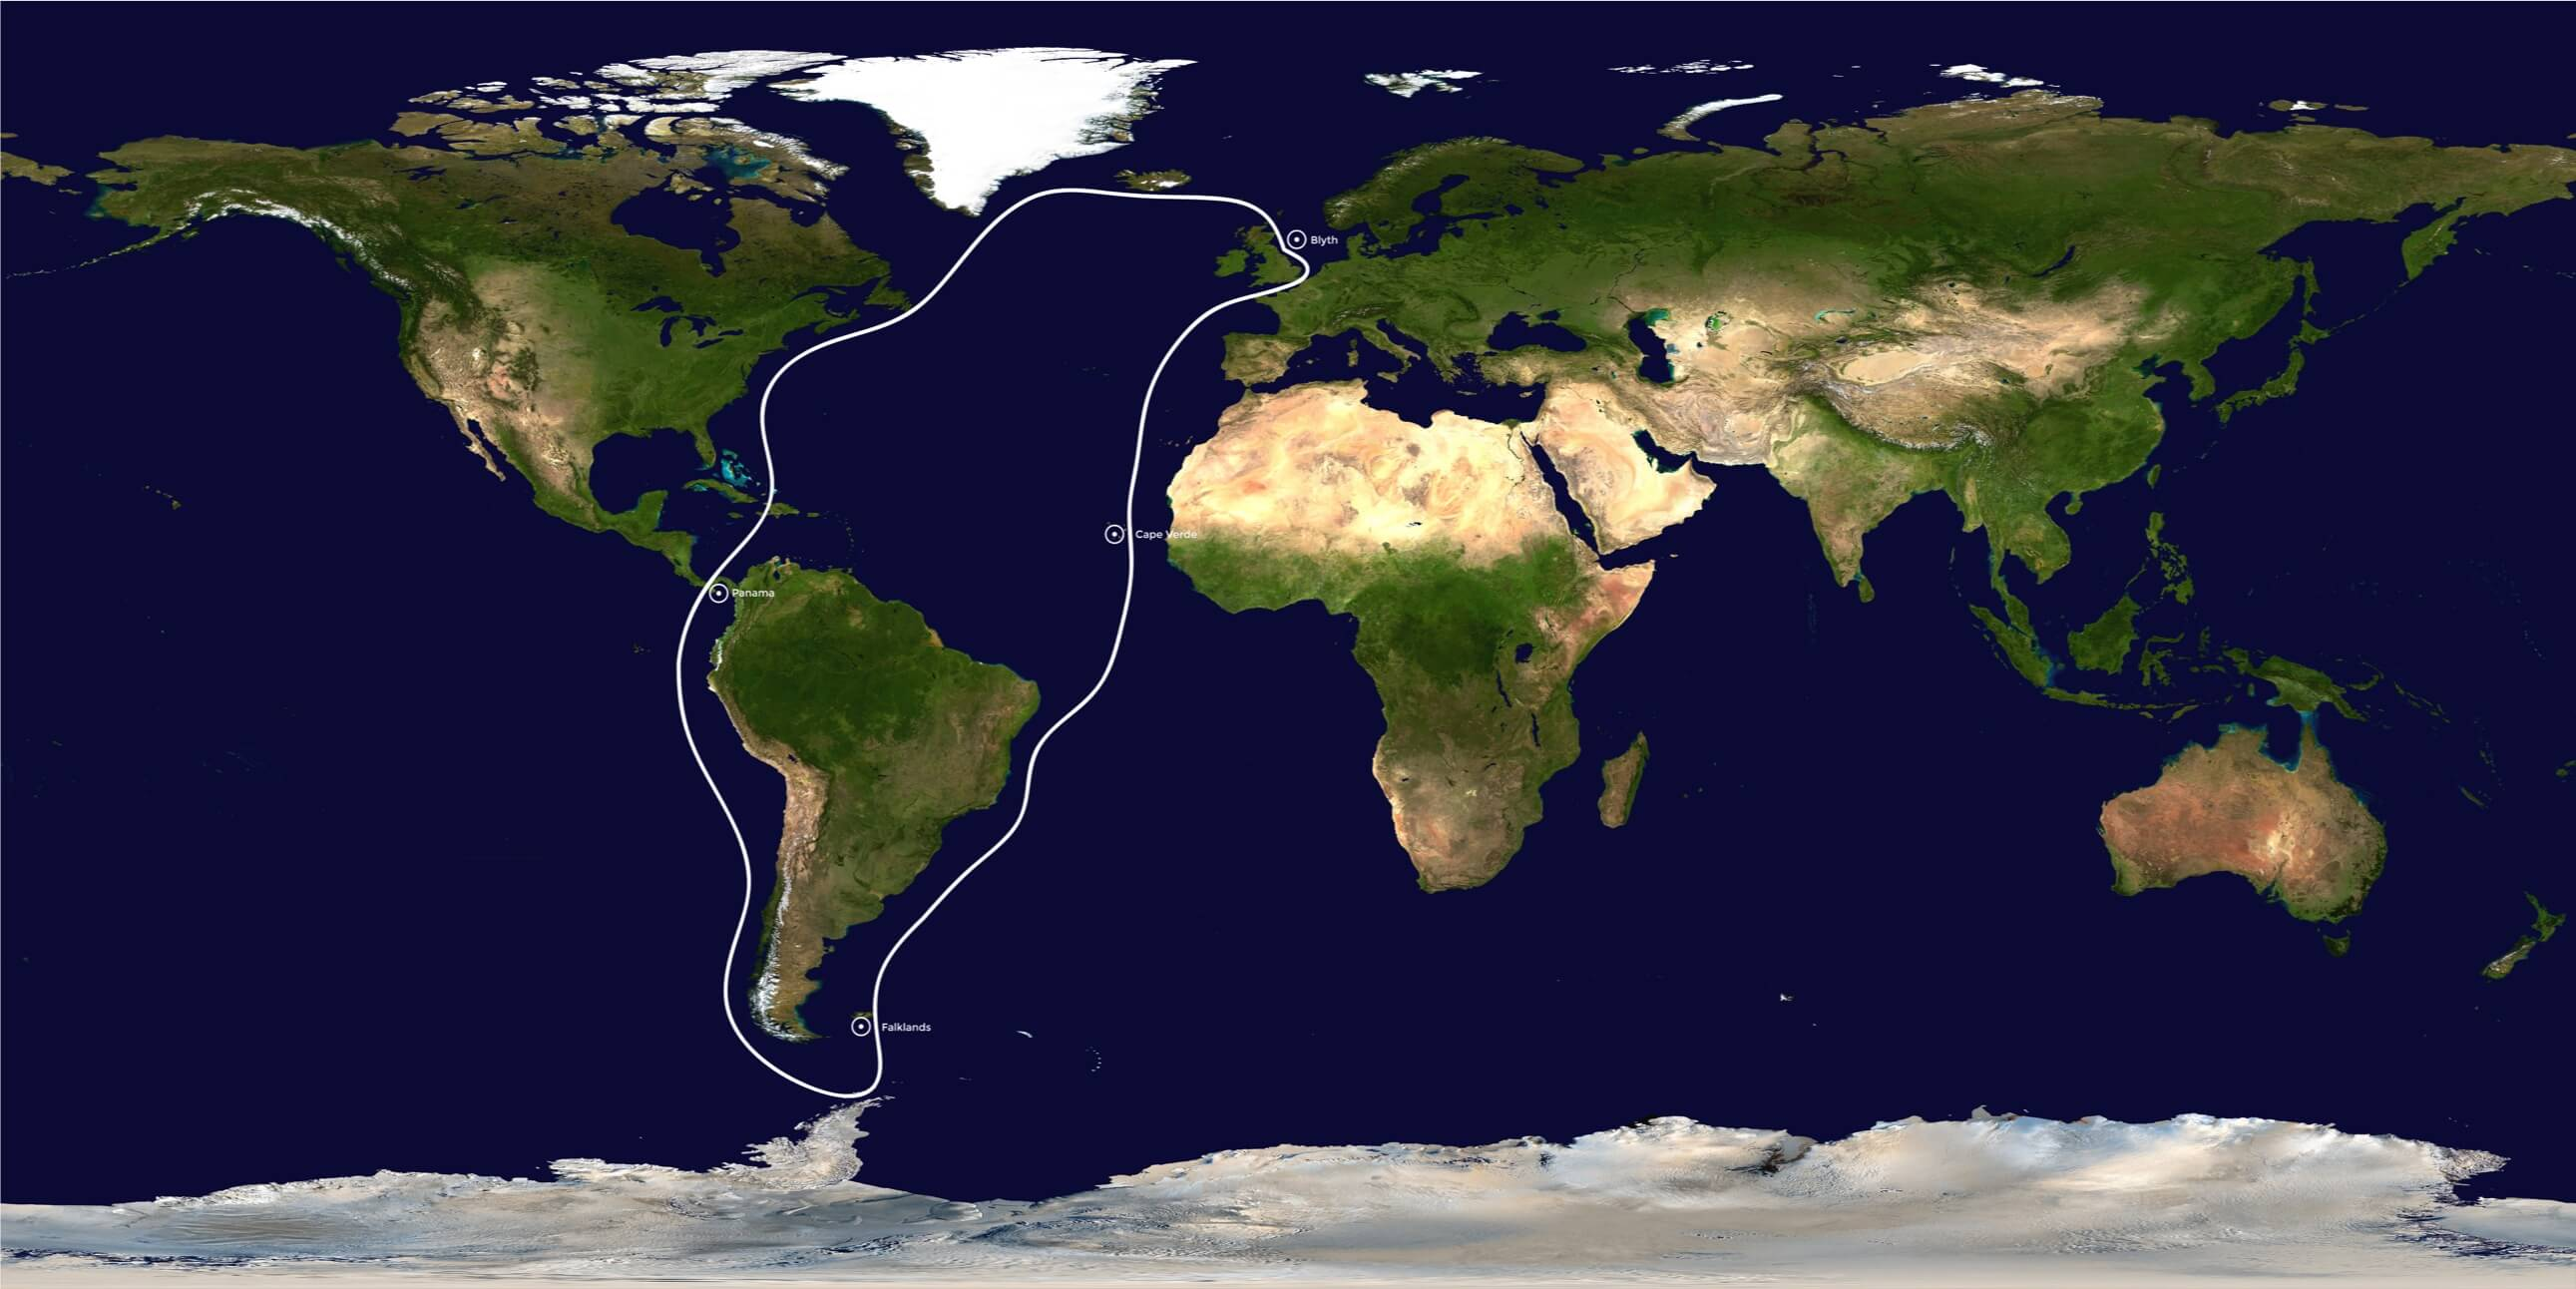 Voyage Route for Williams Expedition